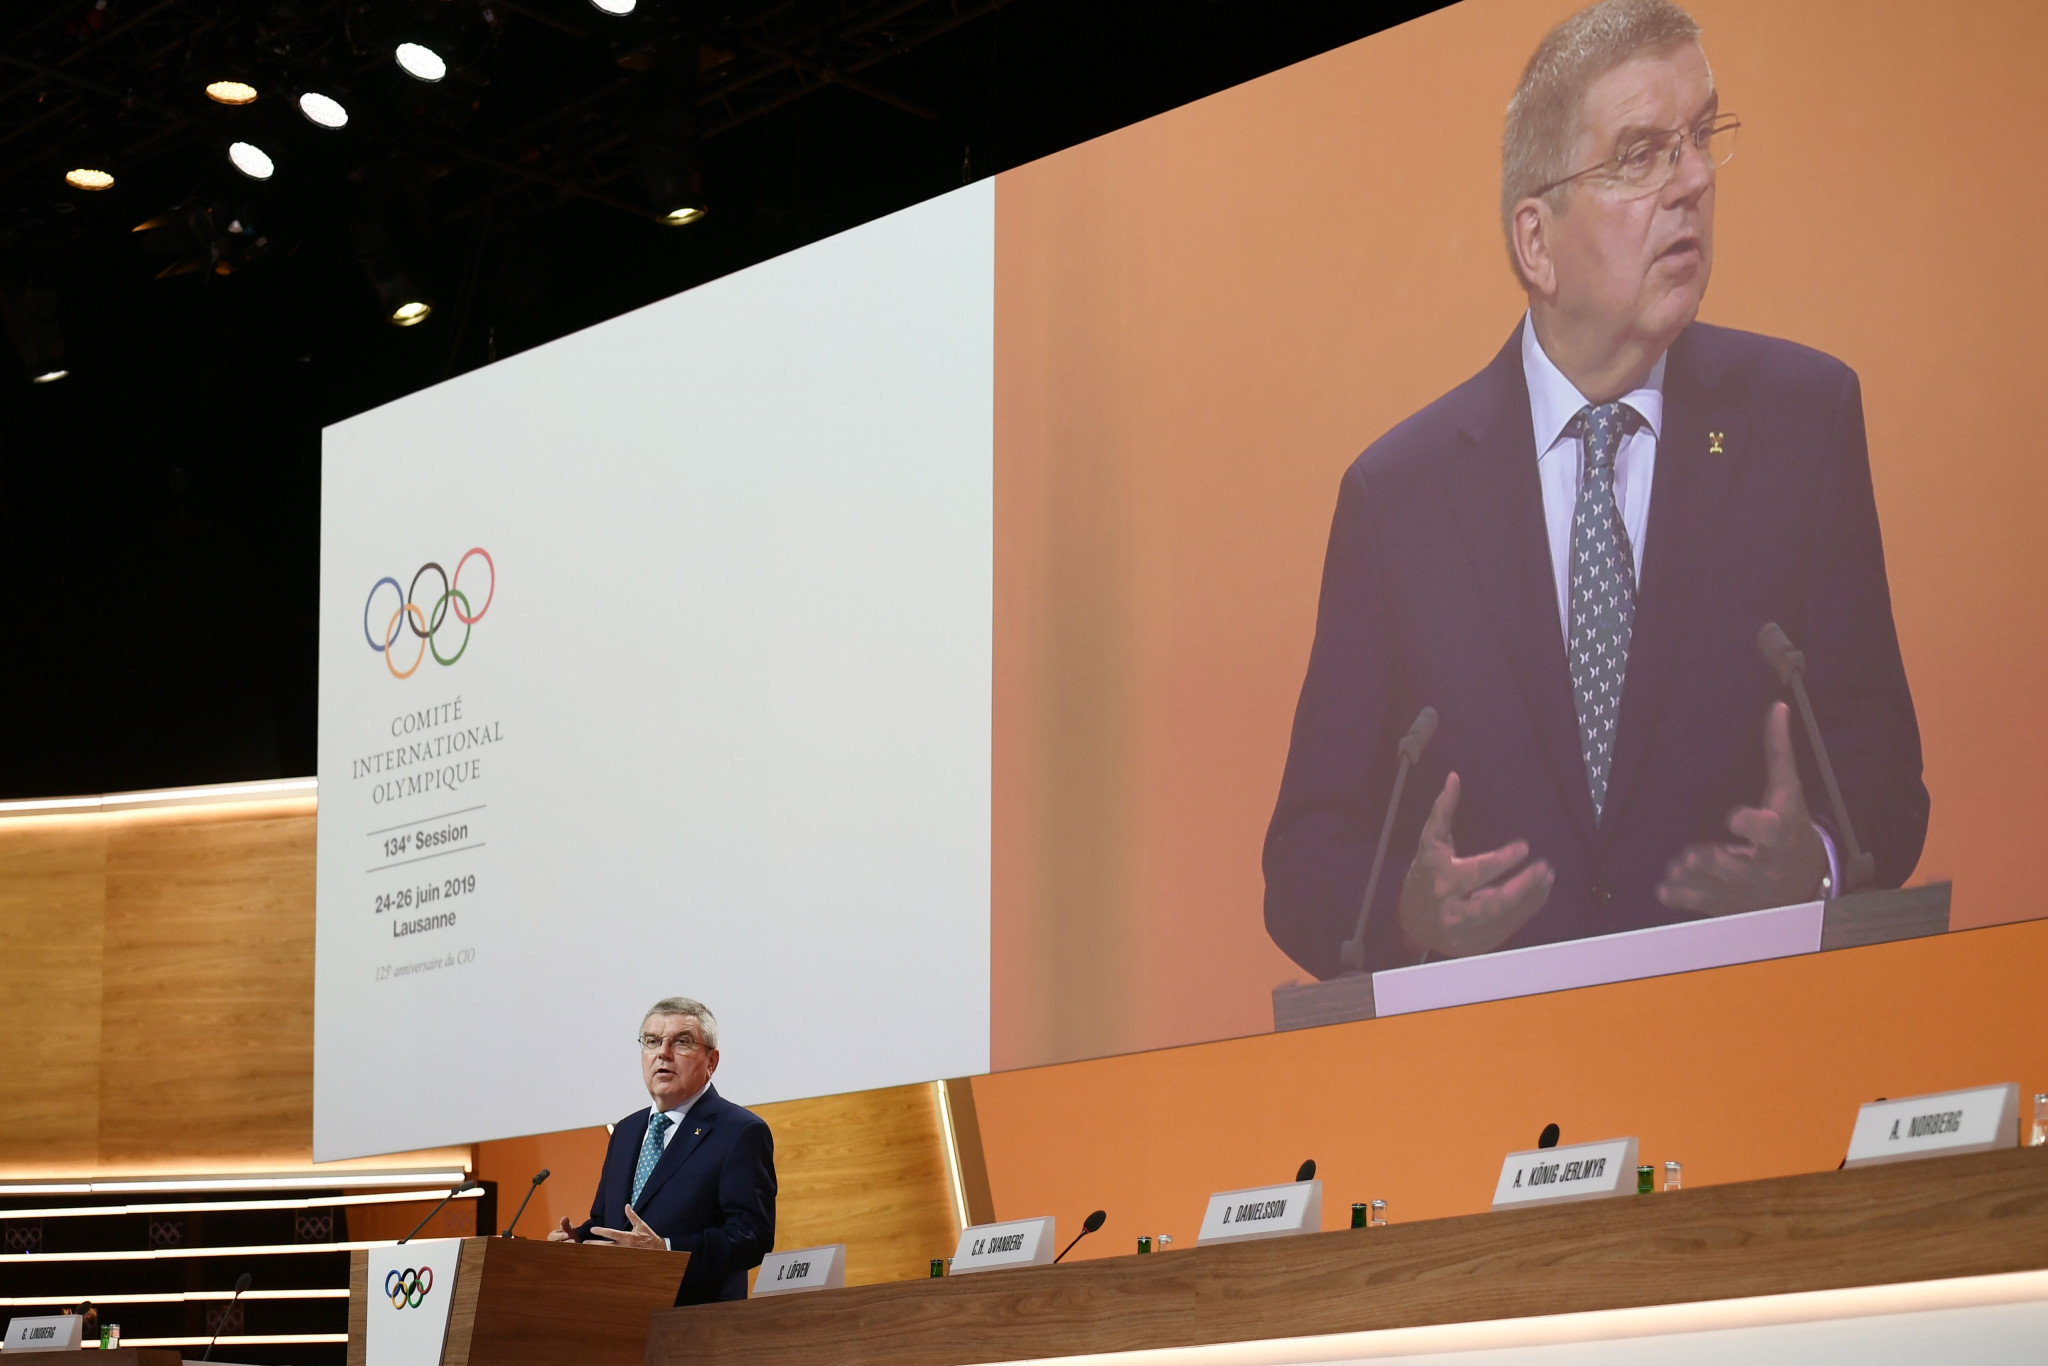 IOC Session: D-day for Stockholm Åre and Milan Cortina as host chosen for 2026 Winter Olympic and Paralympic Games